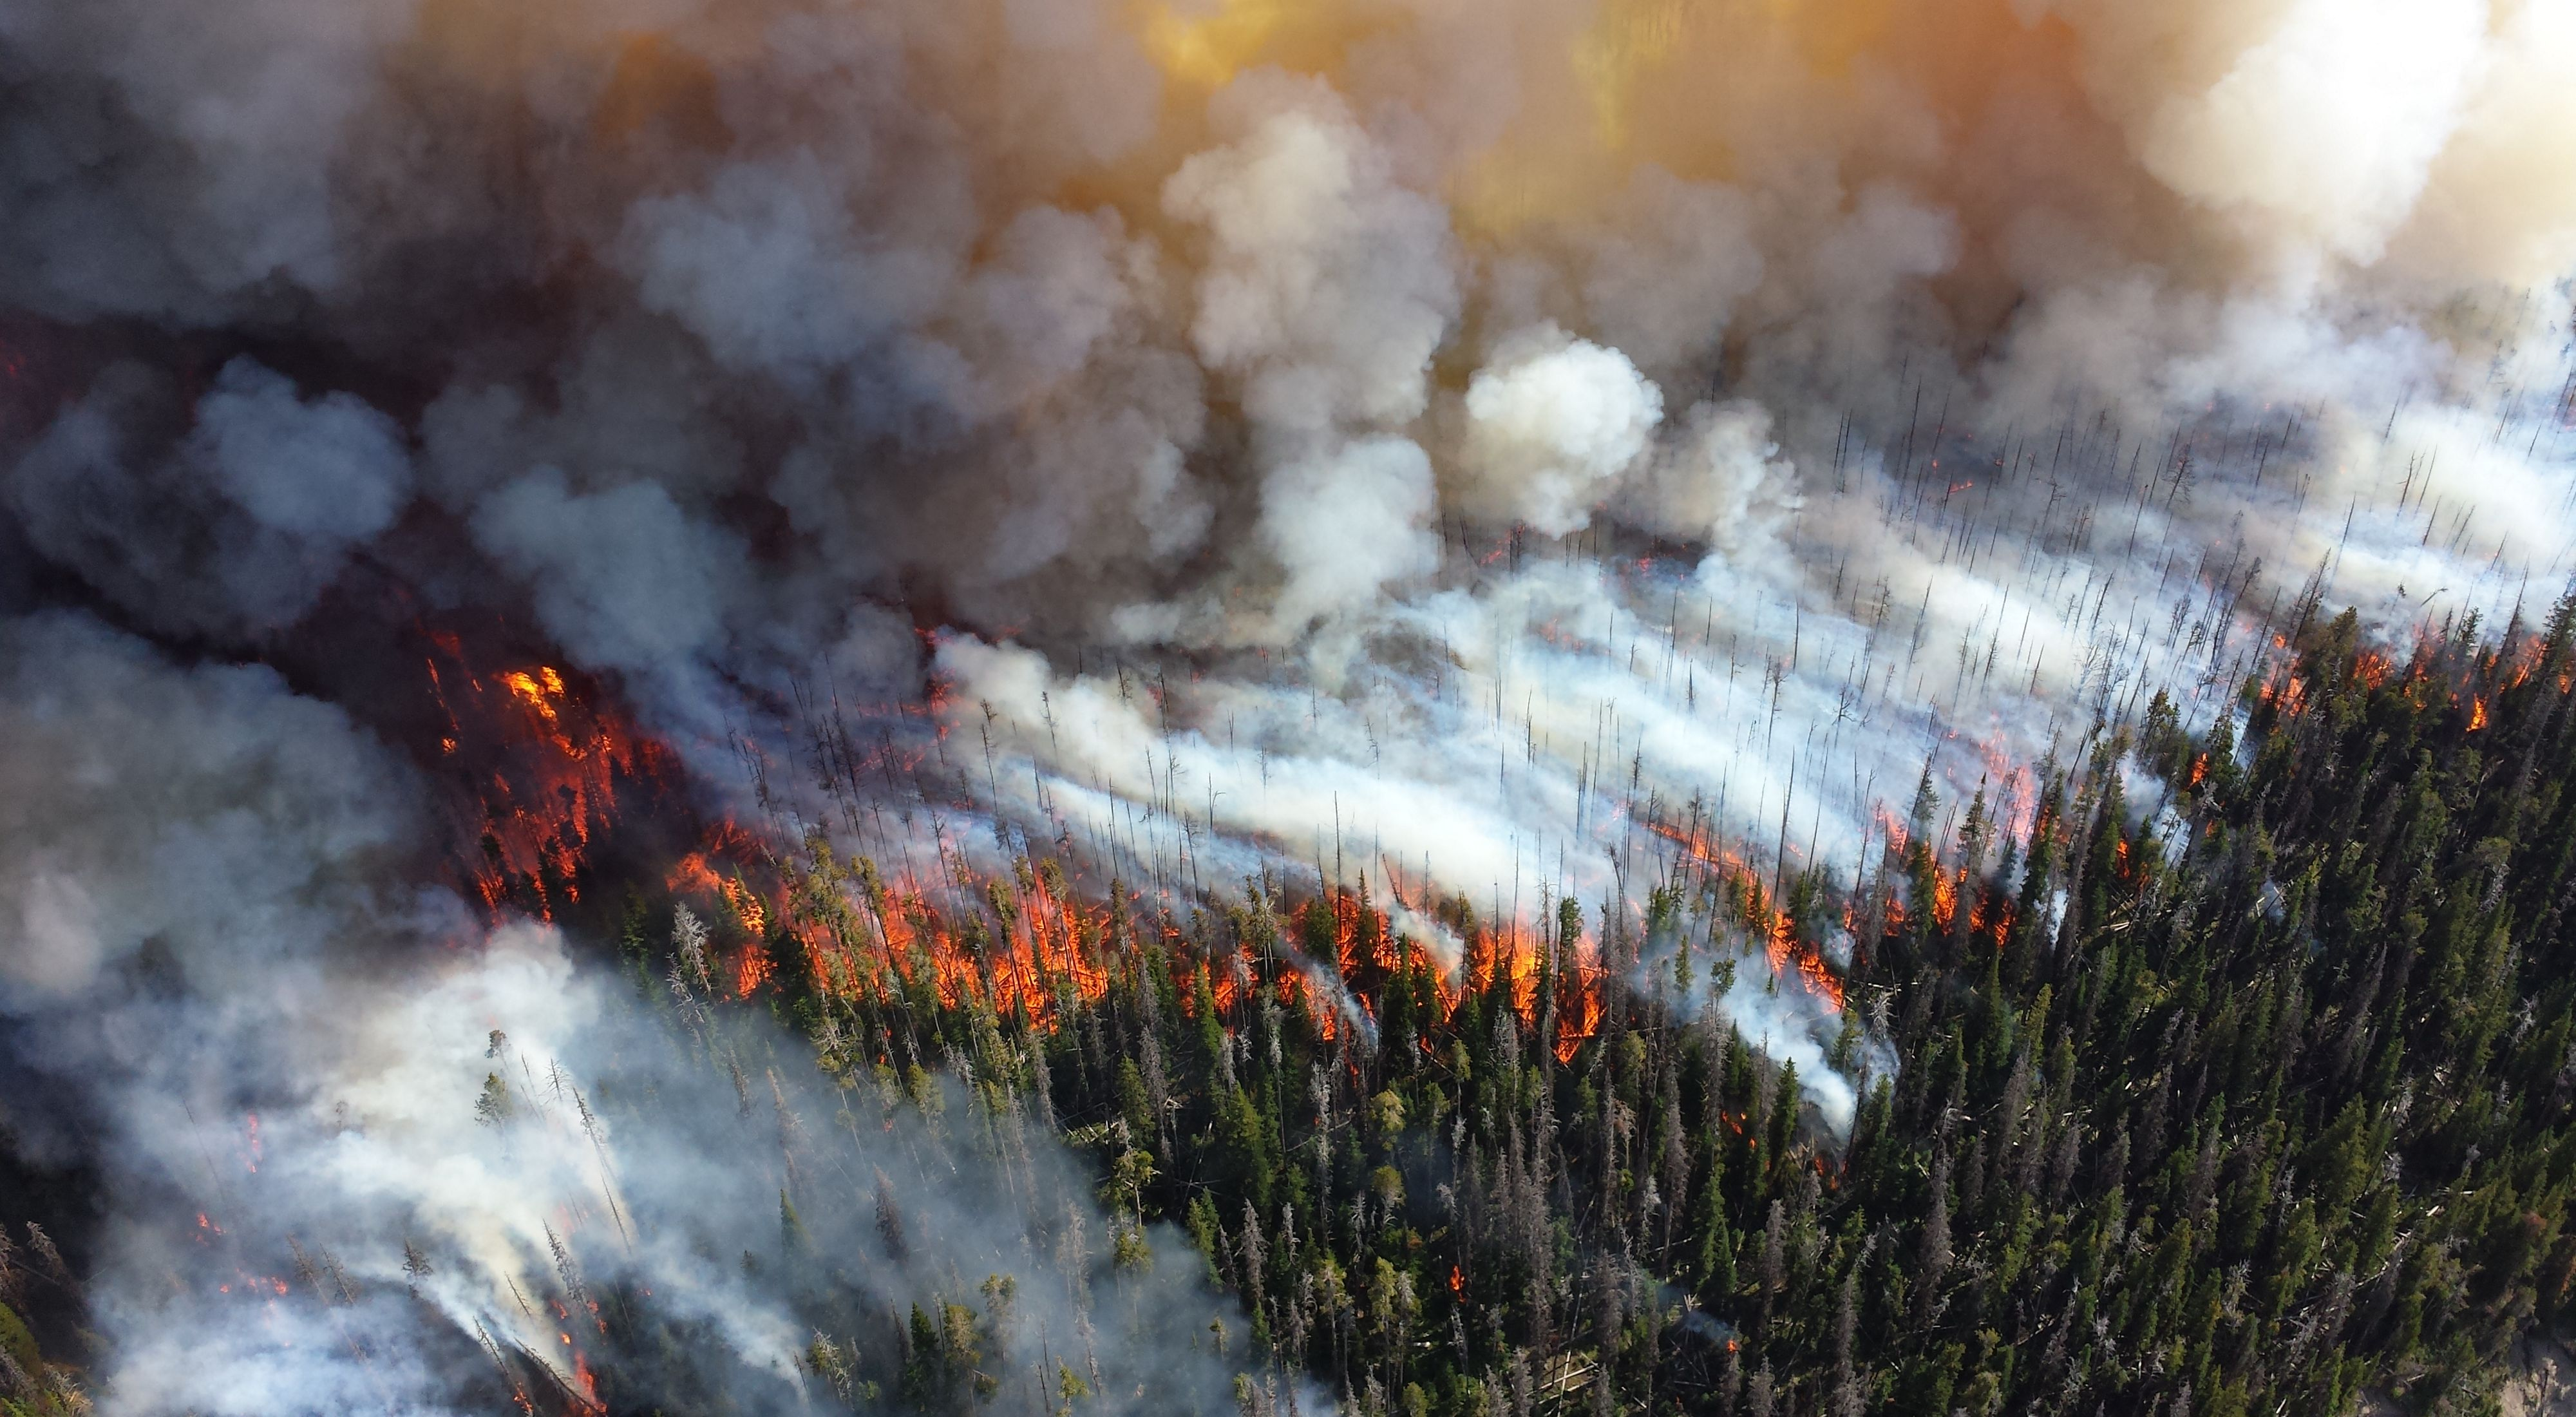 Aerial photo of a wildfire and smoke over Yellowstone National Park during the 2013 Alder Fire.